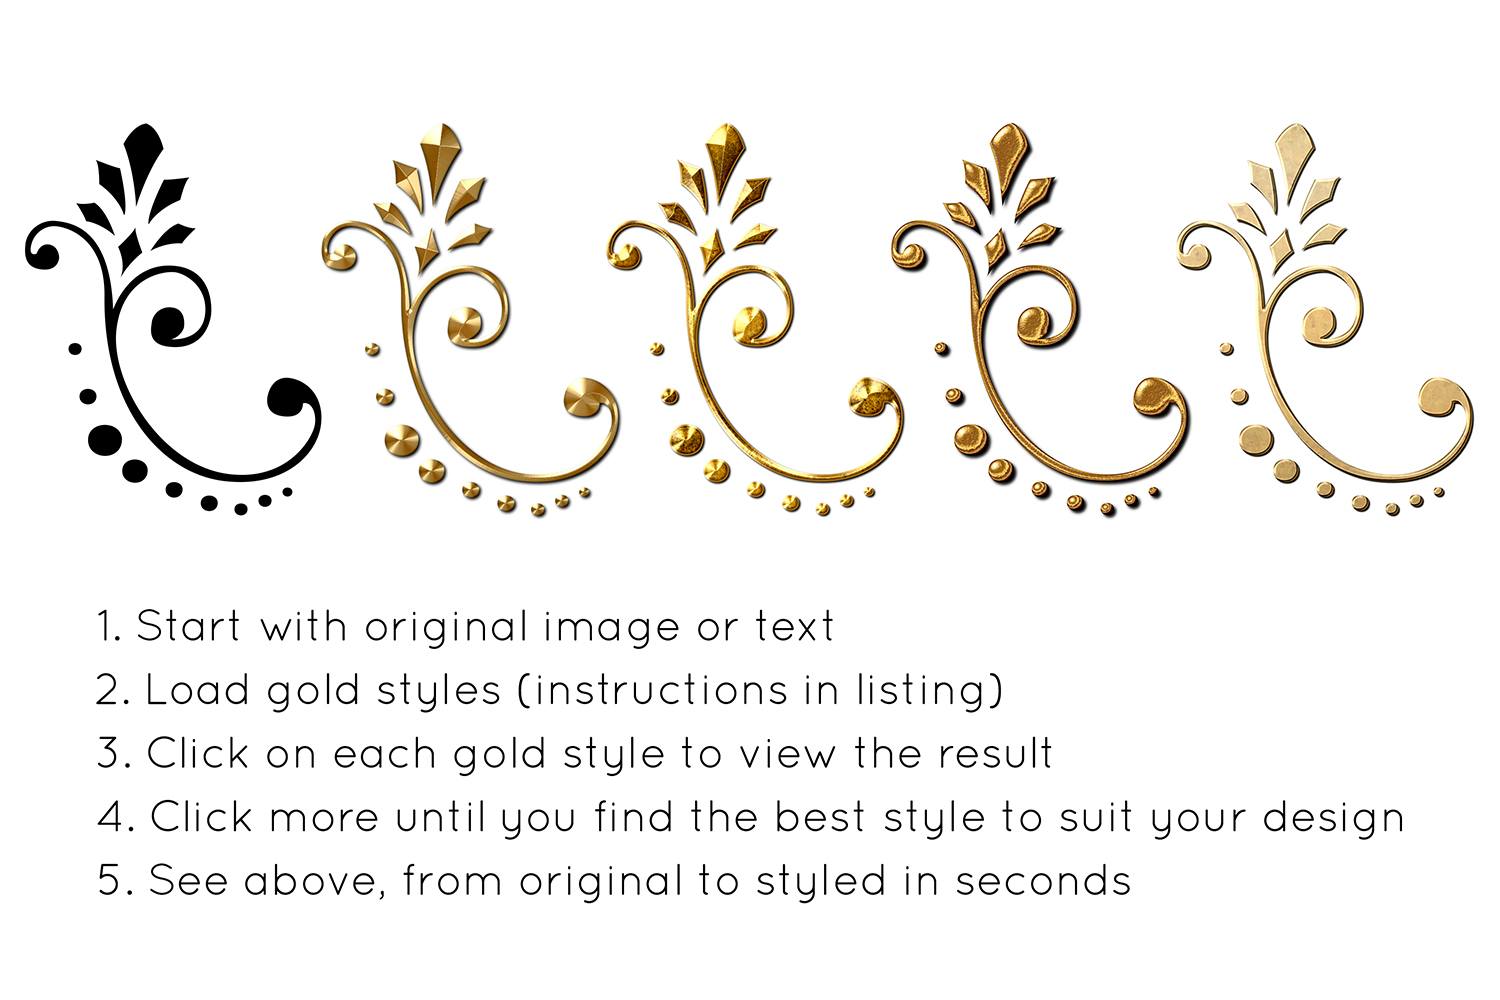 55 Photoshop Text Effects, Gold Foil Effect, Gold Stamp, Embossed Gold, ASL FX Styles, One Click FX example image 4